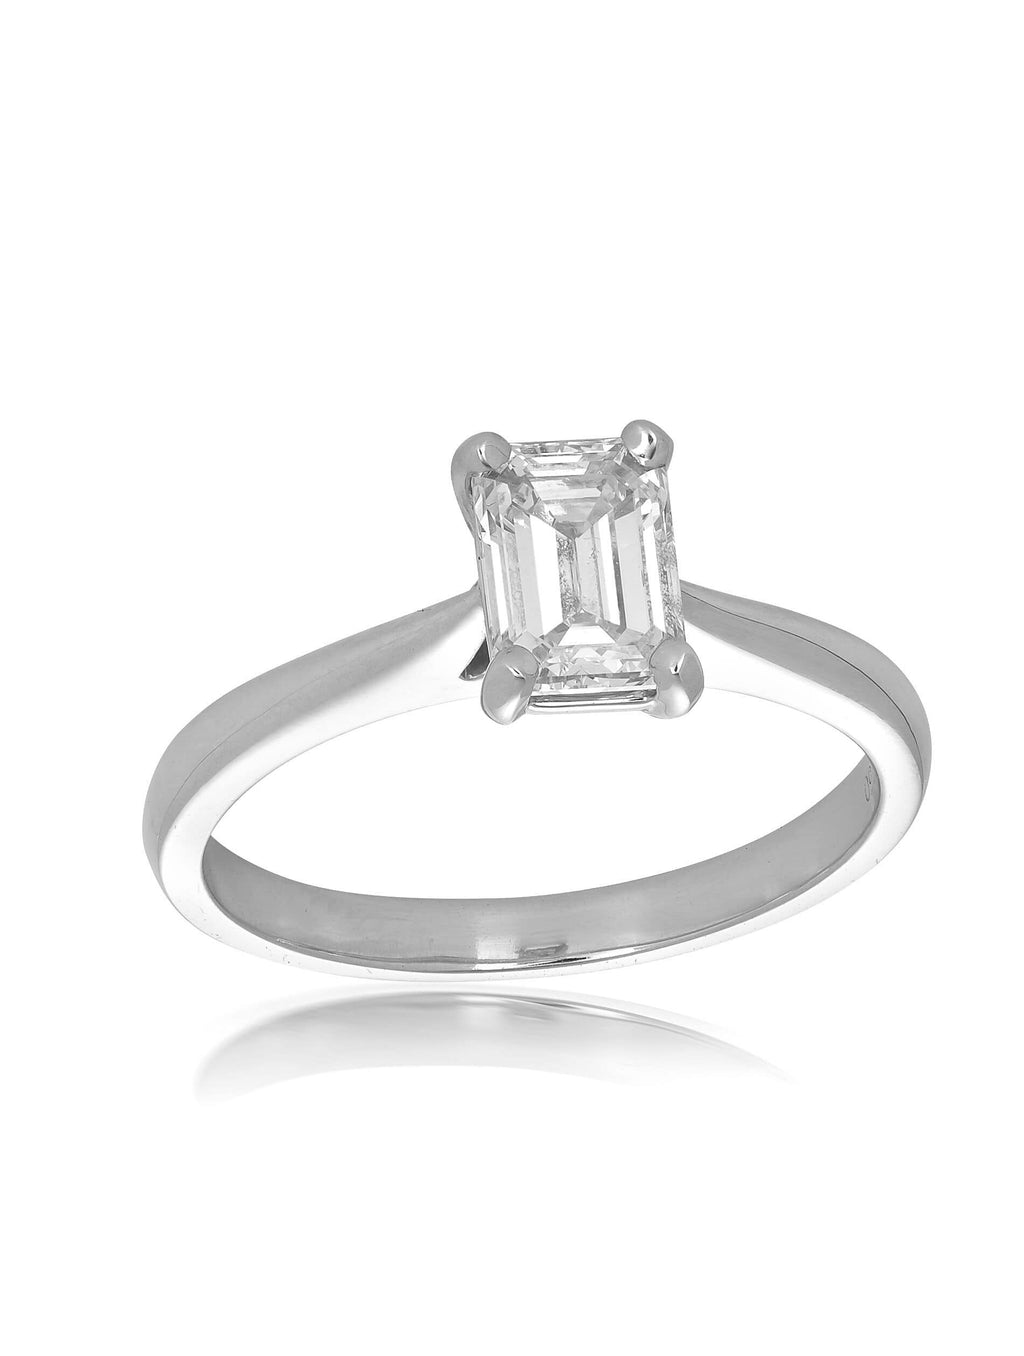 Signature Emerald Cut Diamond Ring